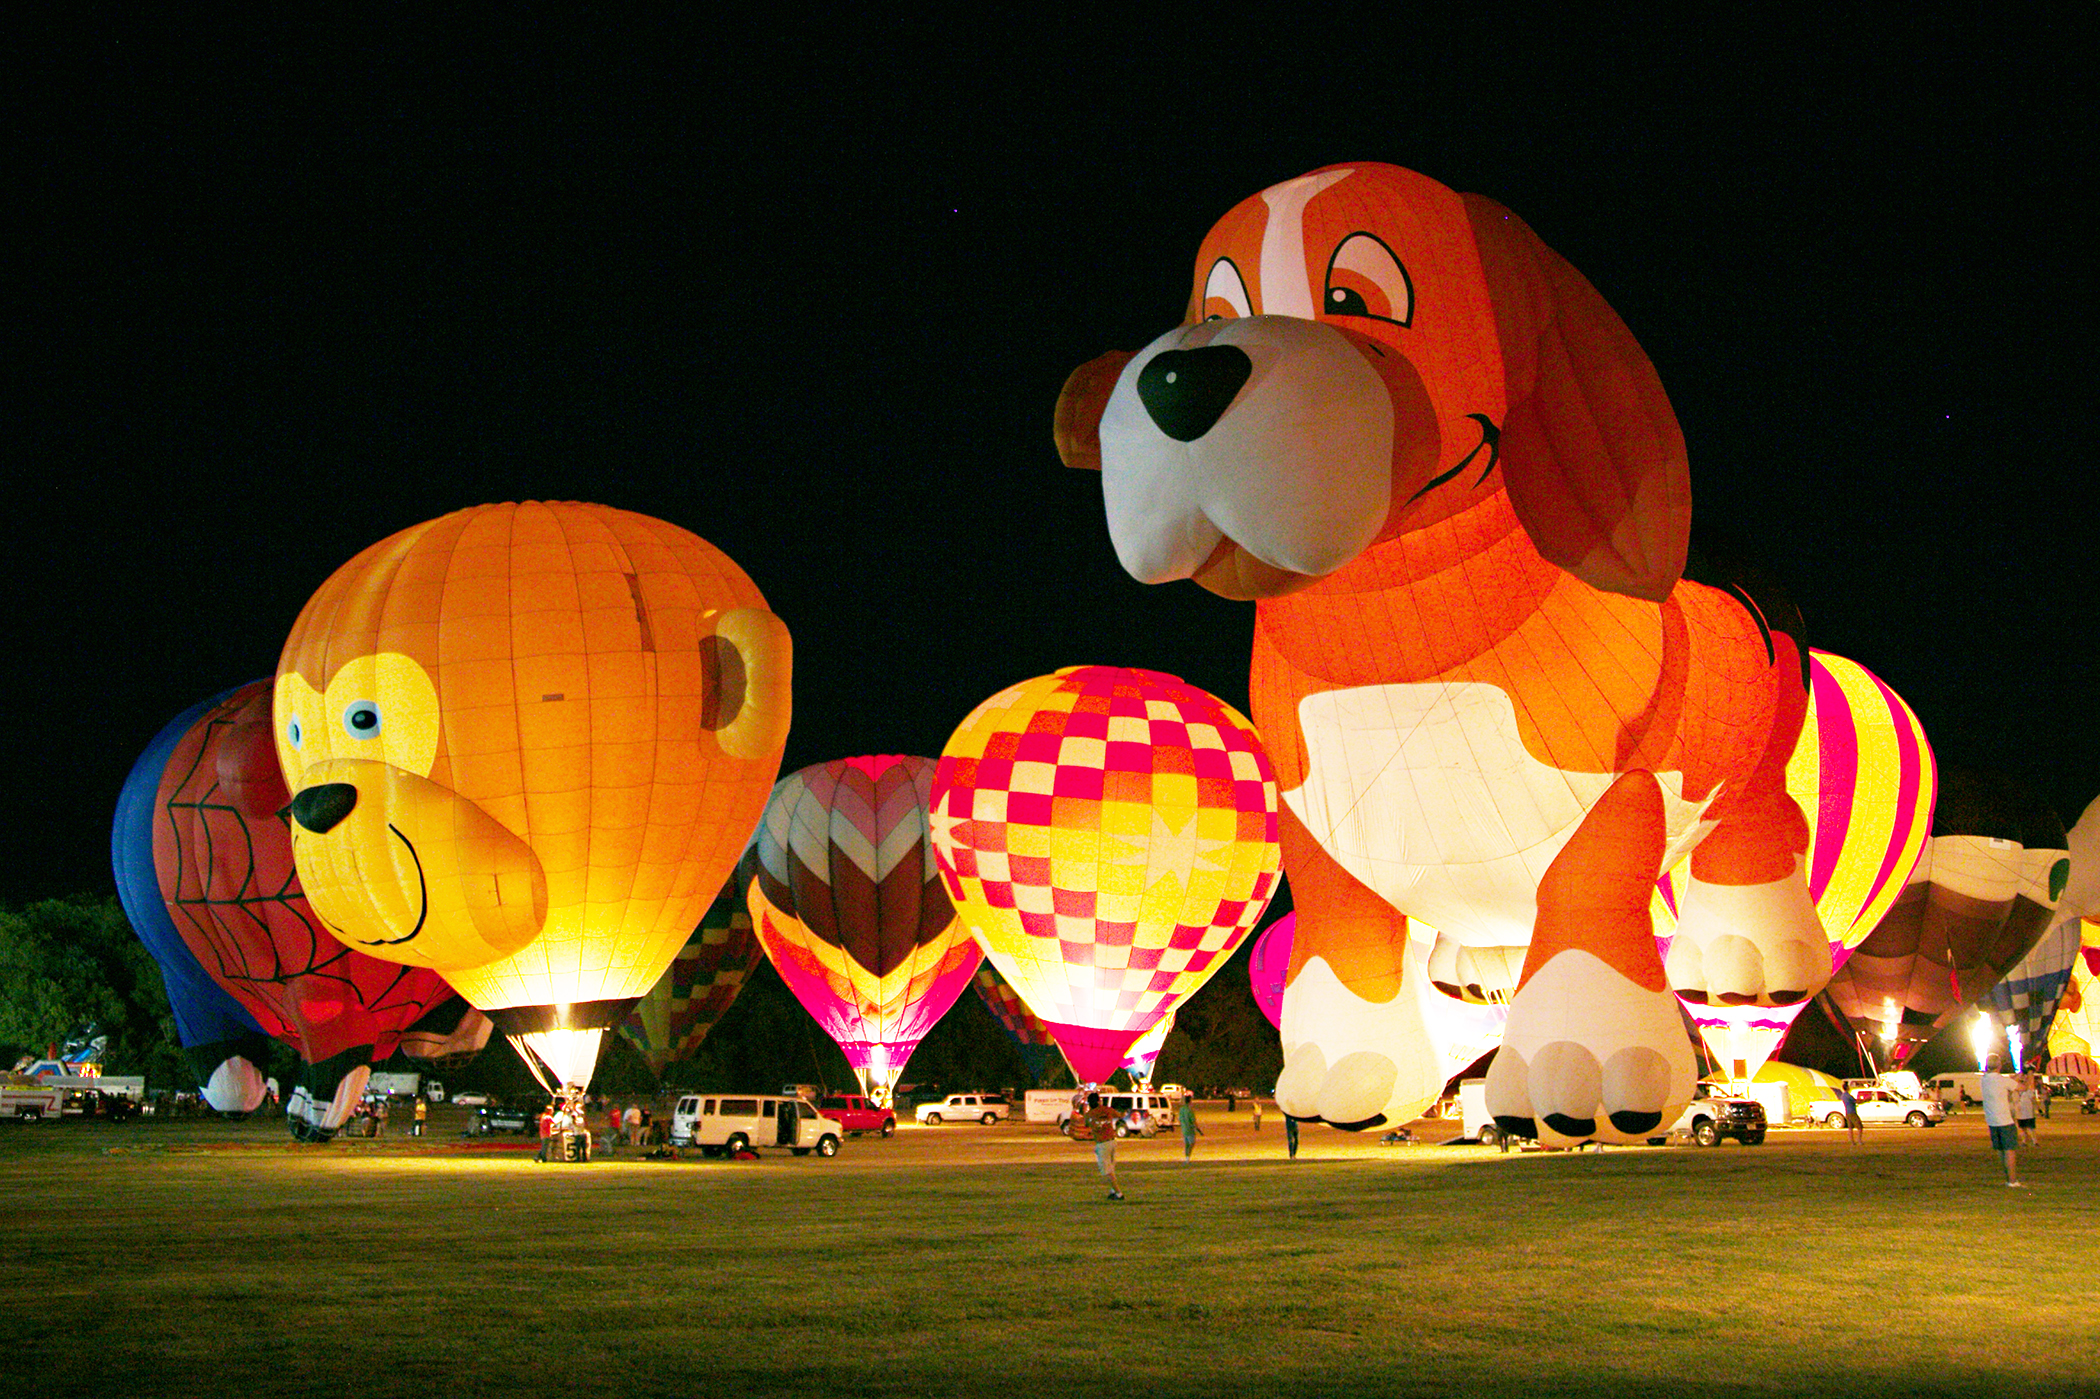 """<strong>Plano, Texas. </strong> The Plano Balloon Festival has become a signature annual event every fall. The rest of the year, Plano is known for making good on its motto—""""A great place to do business,"""" which has helped draw companies including J.C. Penney, Frito-Lay, and Bank of America to town."""